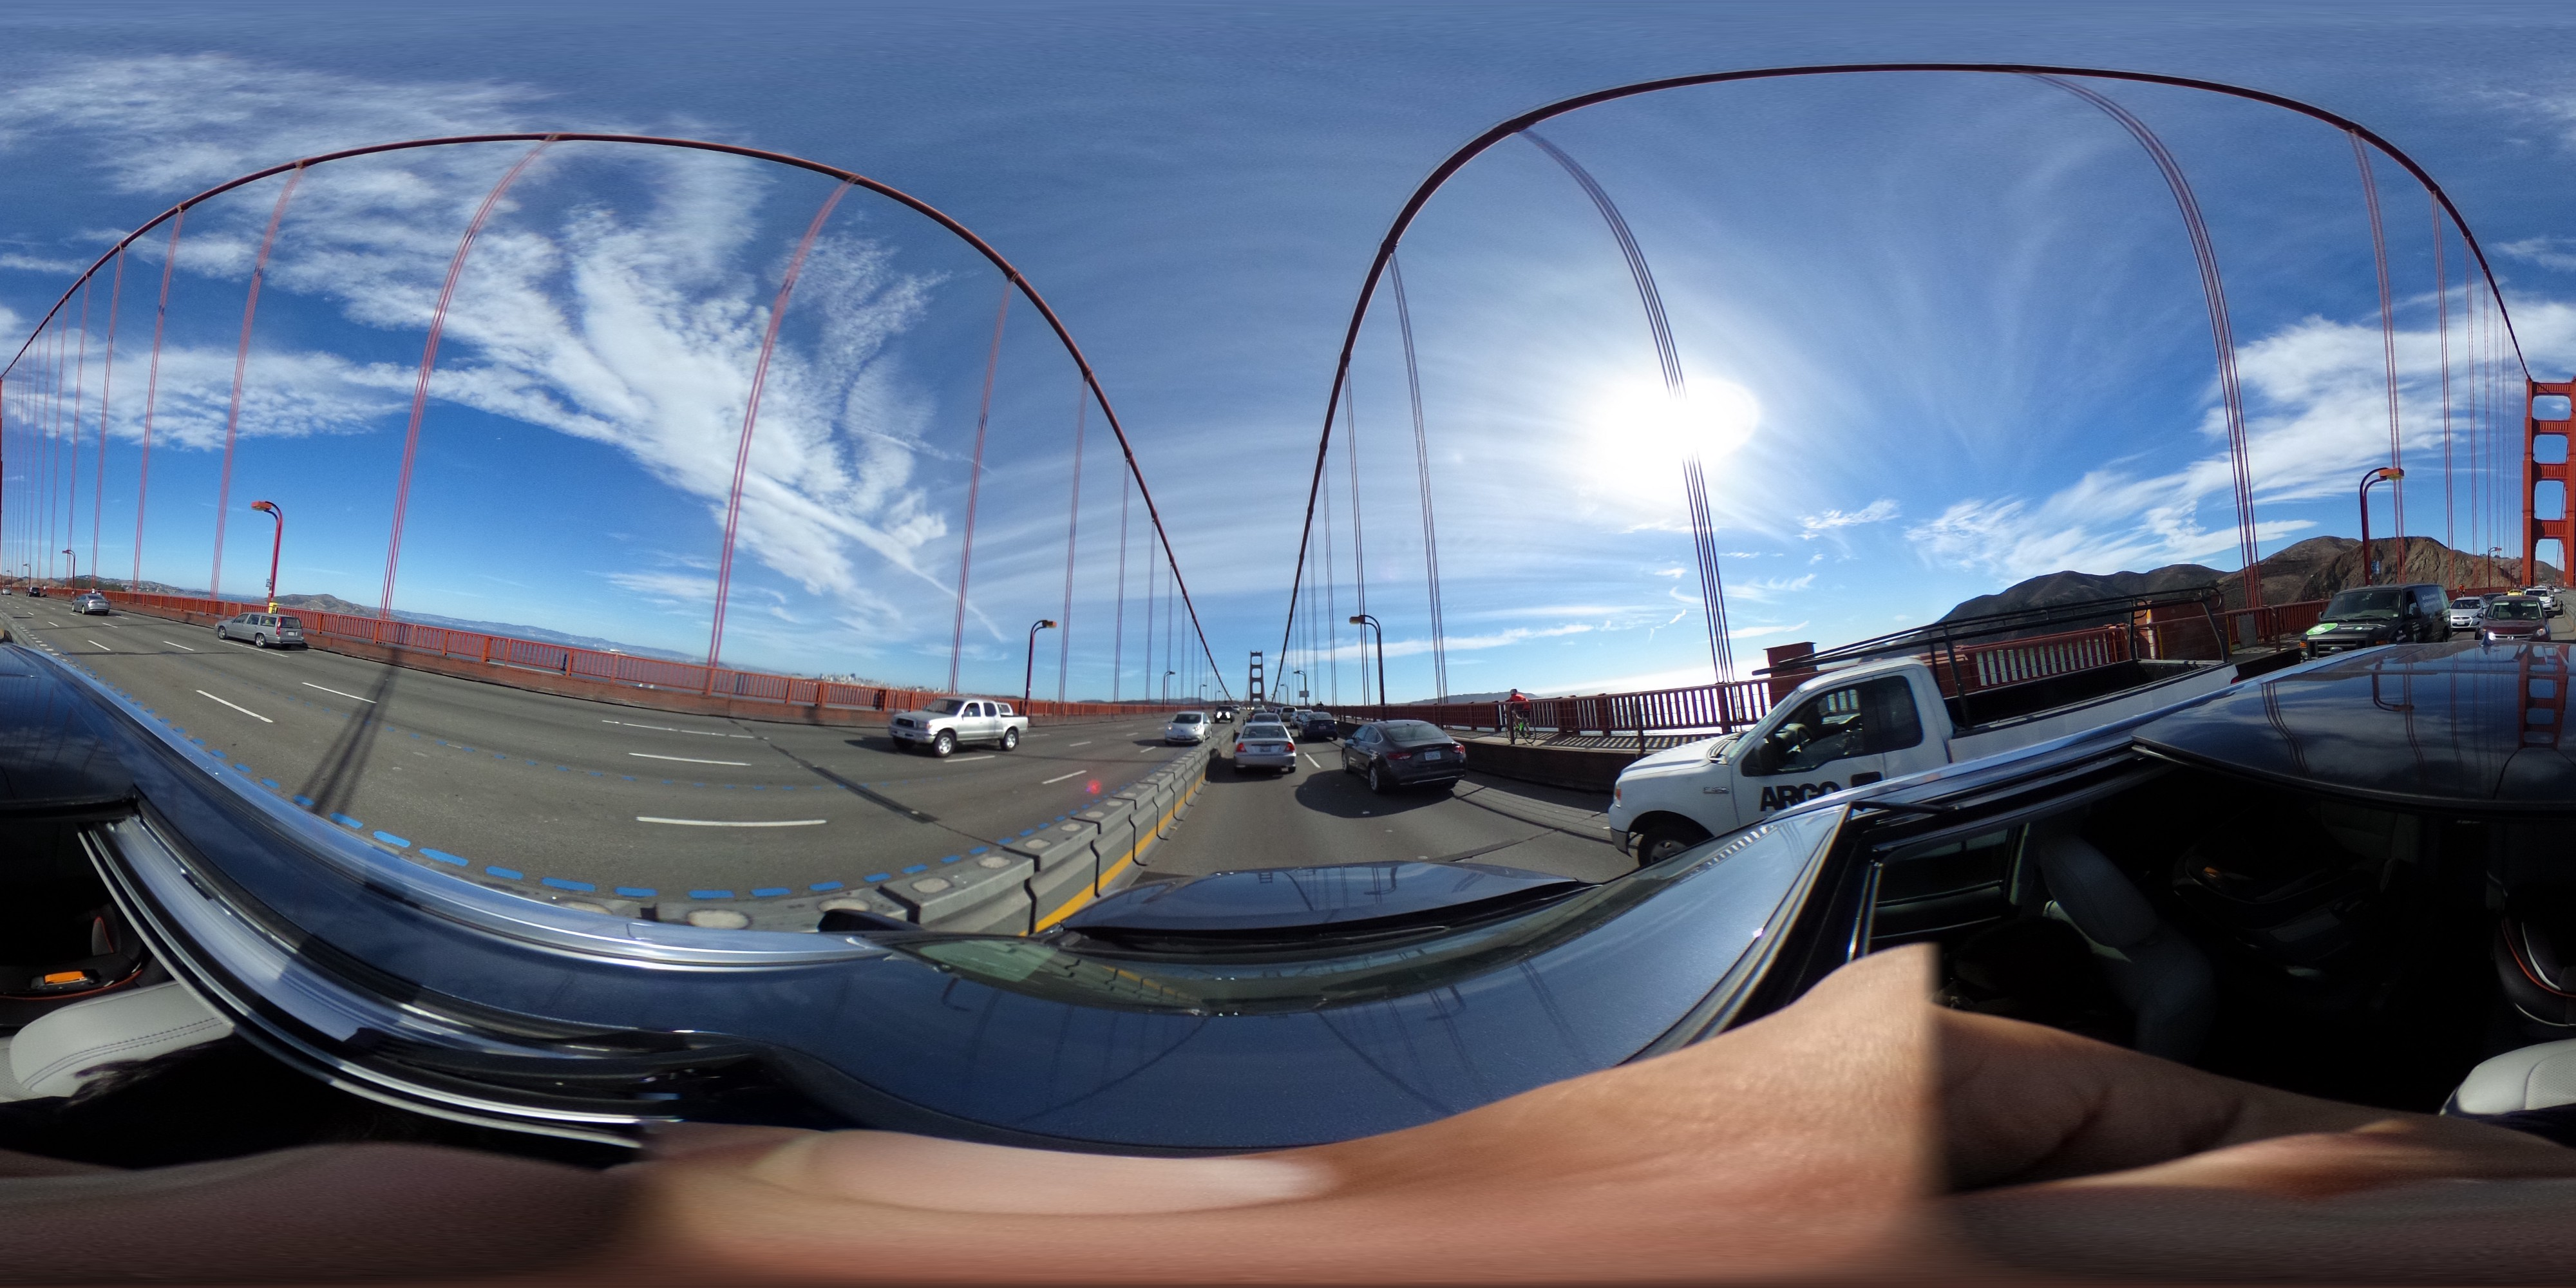 How to take and share 360 photos and videos - The Momento360